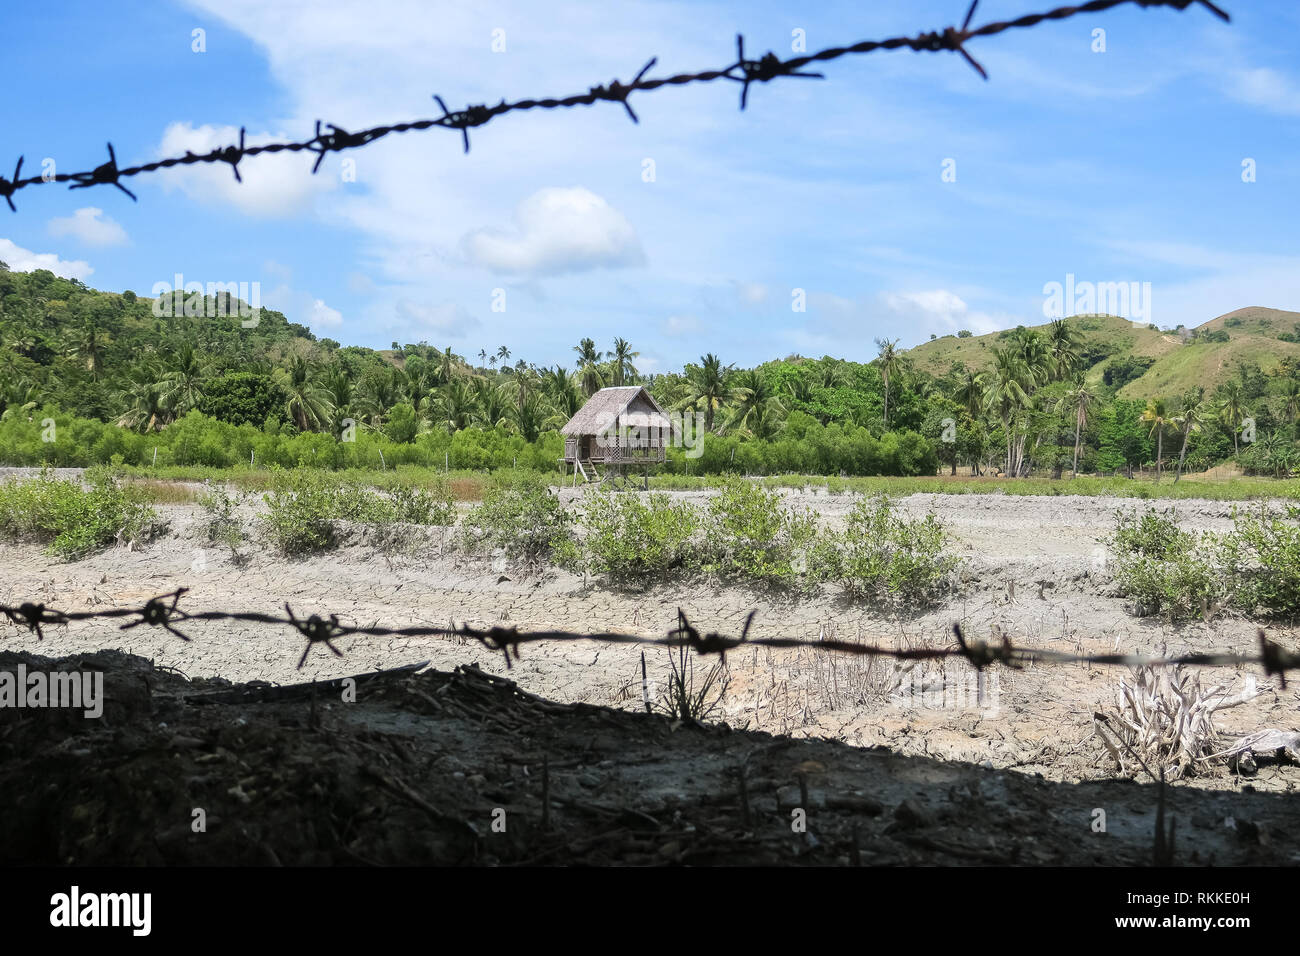 Barbed Wire fence & rustic village hut in hilly Philippine field - Cotabato, Mindanao - Stock Image